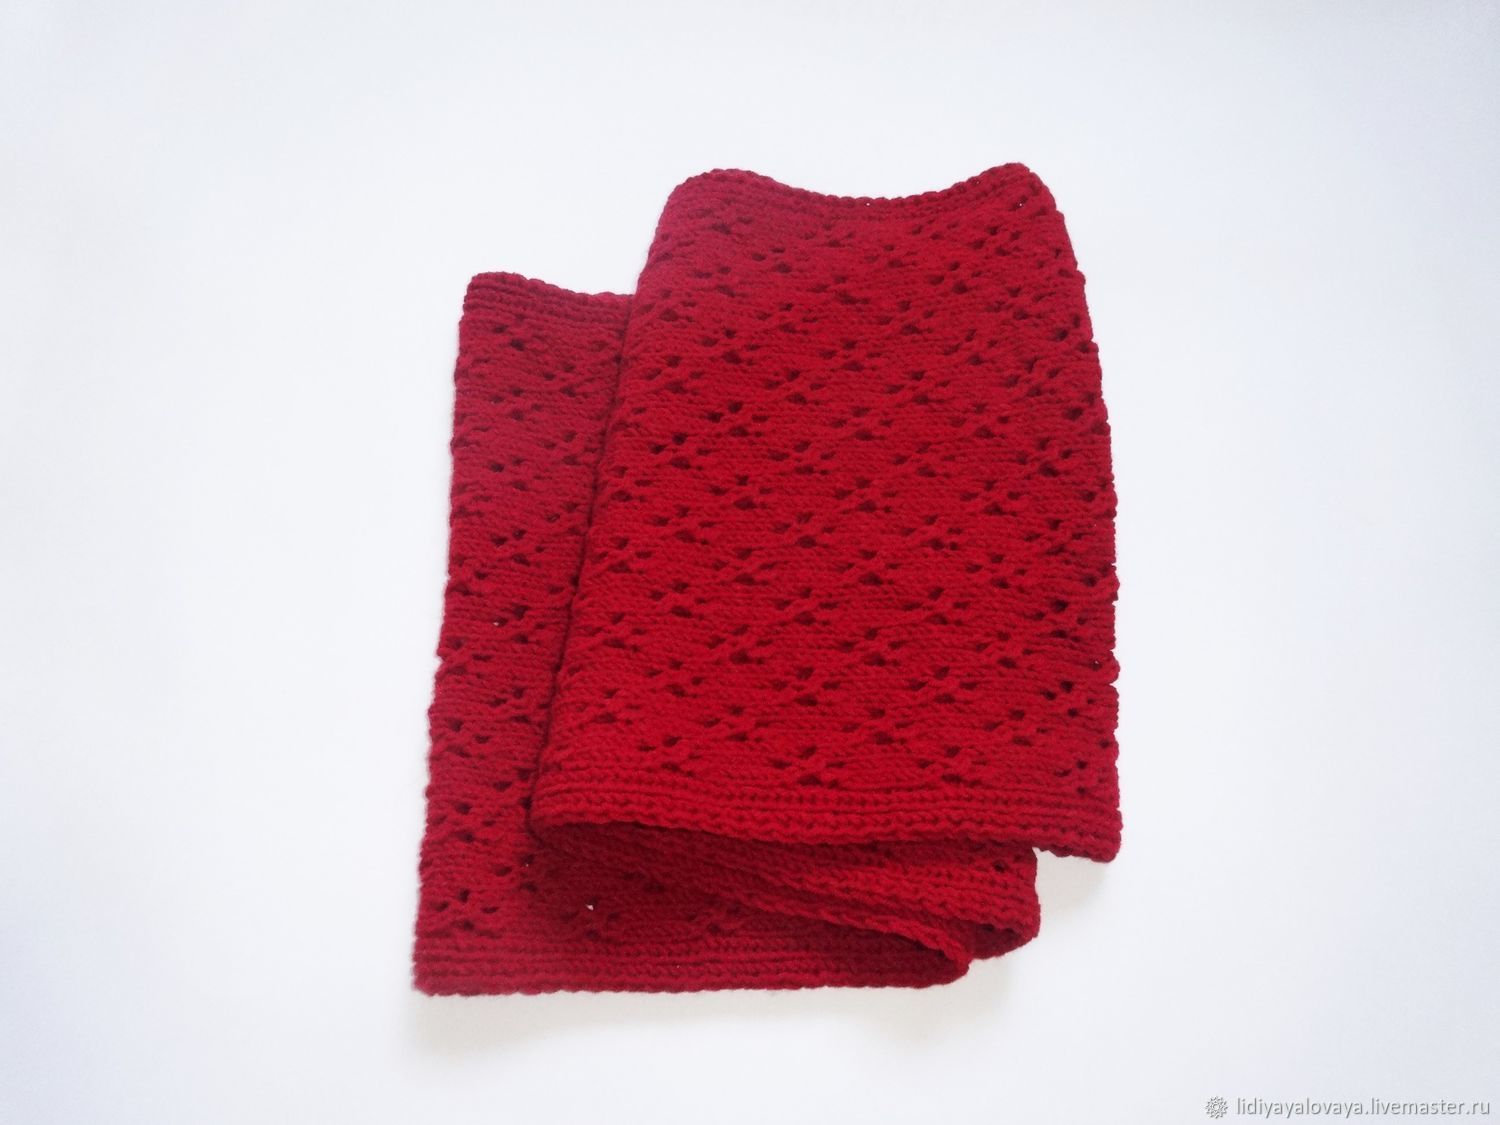 knitted Snood, Snood in two turns, wool cowl, Snood in the wool, cherry, women's Snood,Snood winter, autumn Snood,tube scarf.